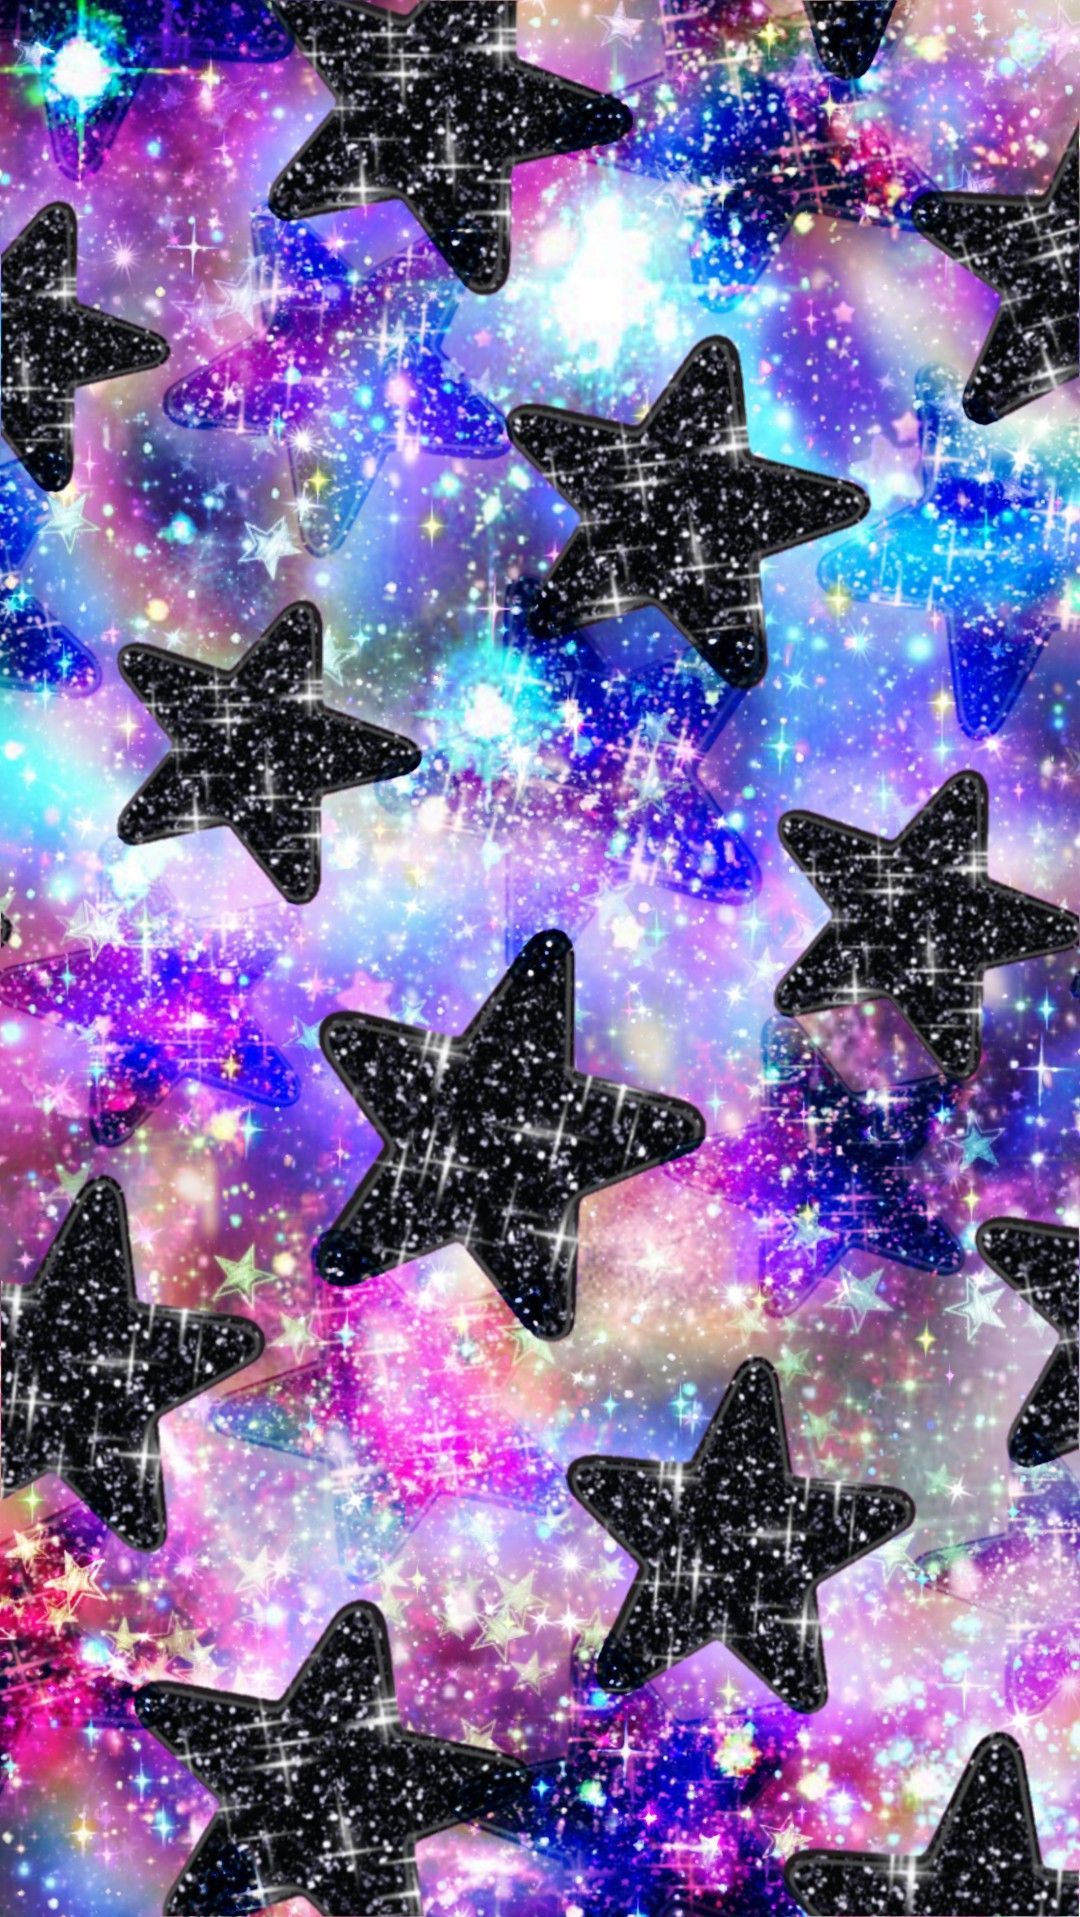 Sparkly Stars Made By Me Purple Sparkly Wallpapers Backgrounds Sparkles Glittery Galaxy Backgrounds Girly Abstract Art Wallpaper Wallpaper Backgrounds